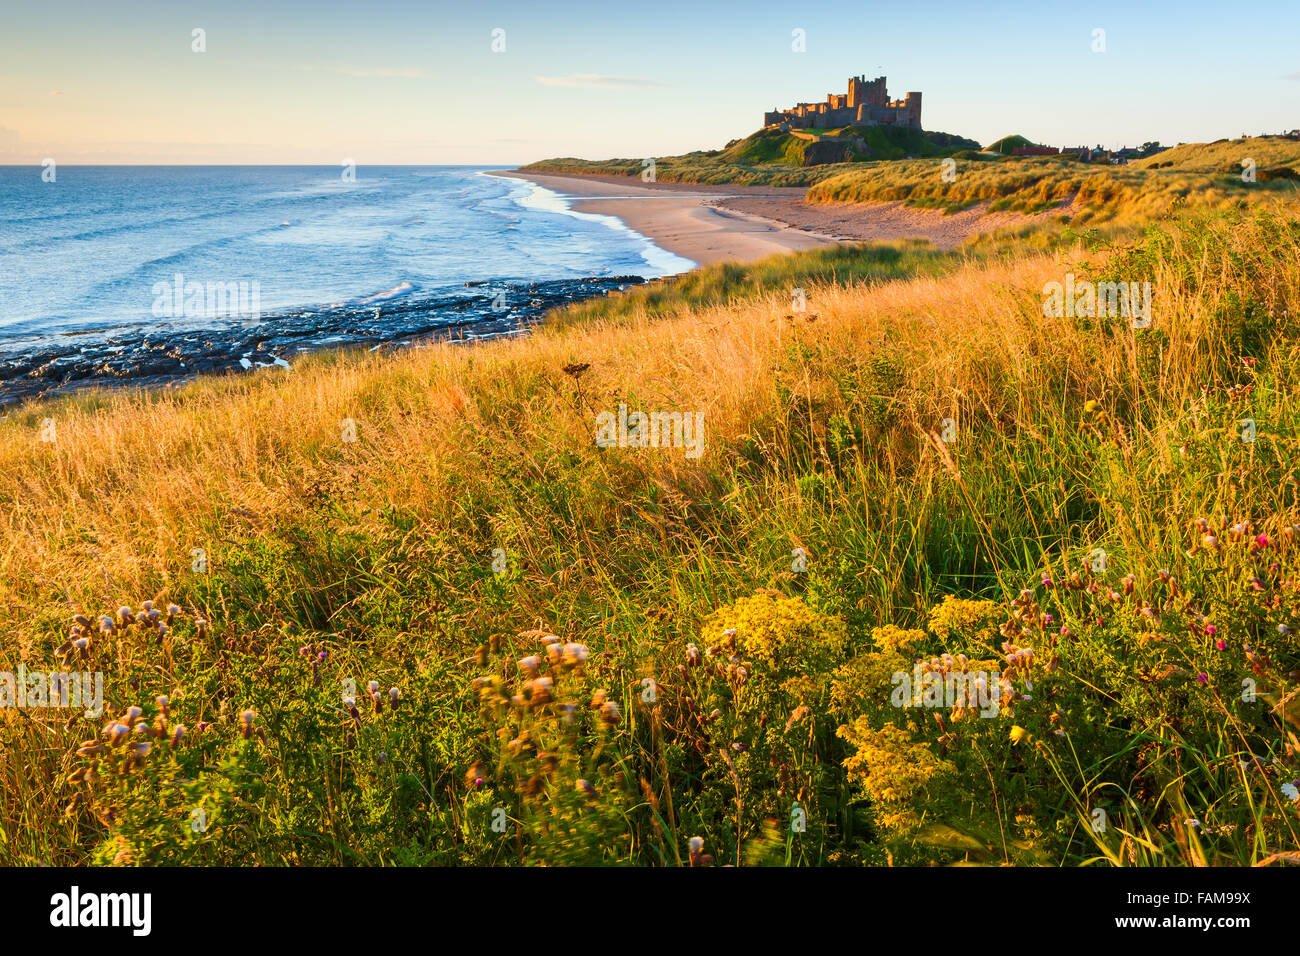 Bamburgh Castle at sunrise on the east cost of Northumberland, England. Stock Photo